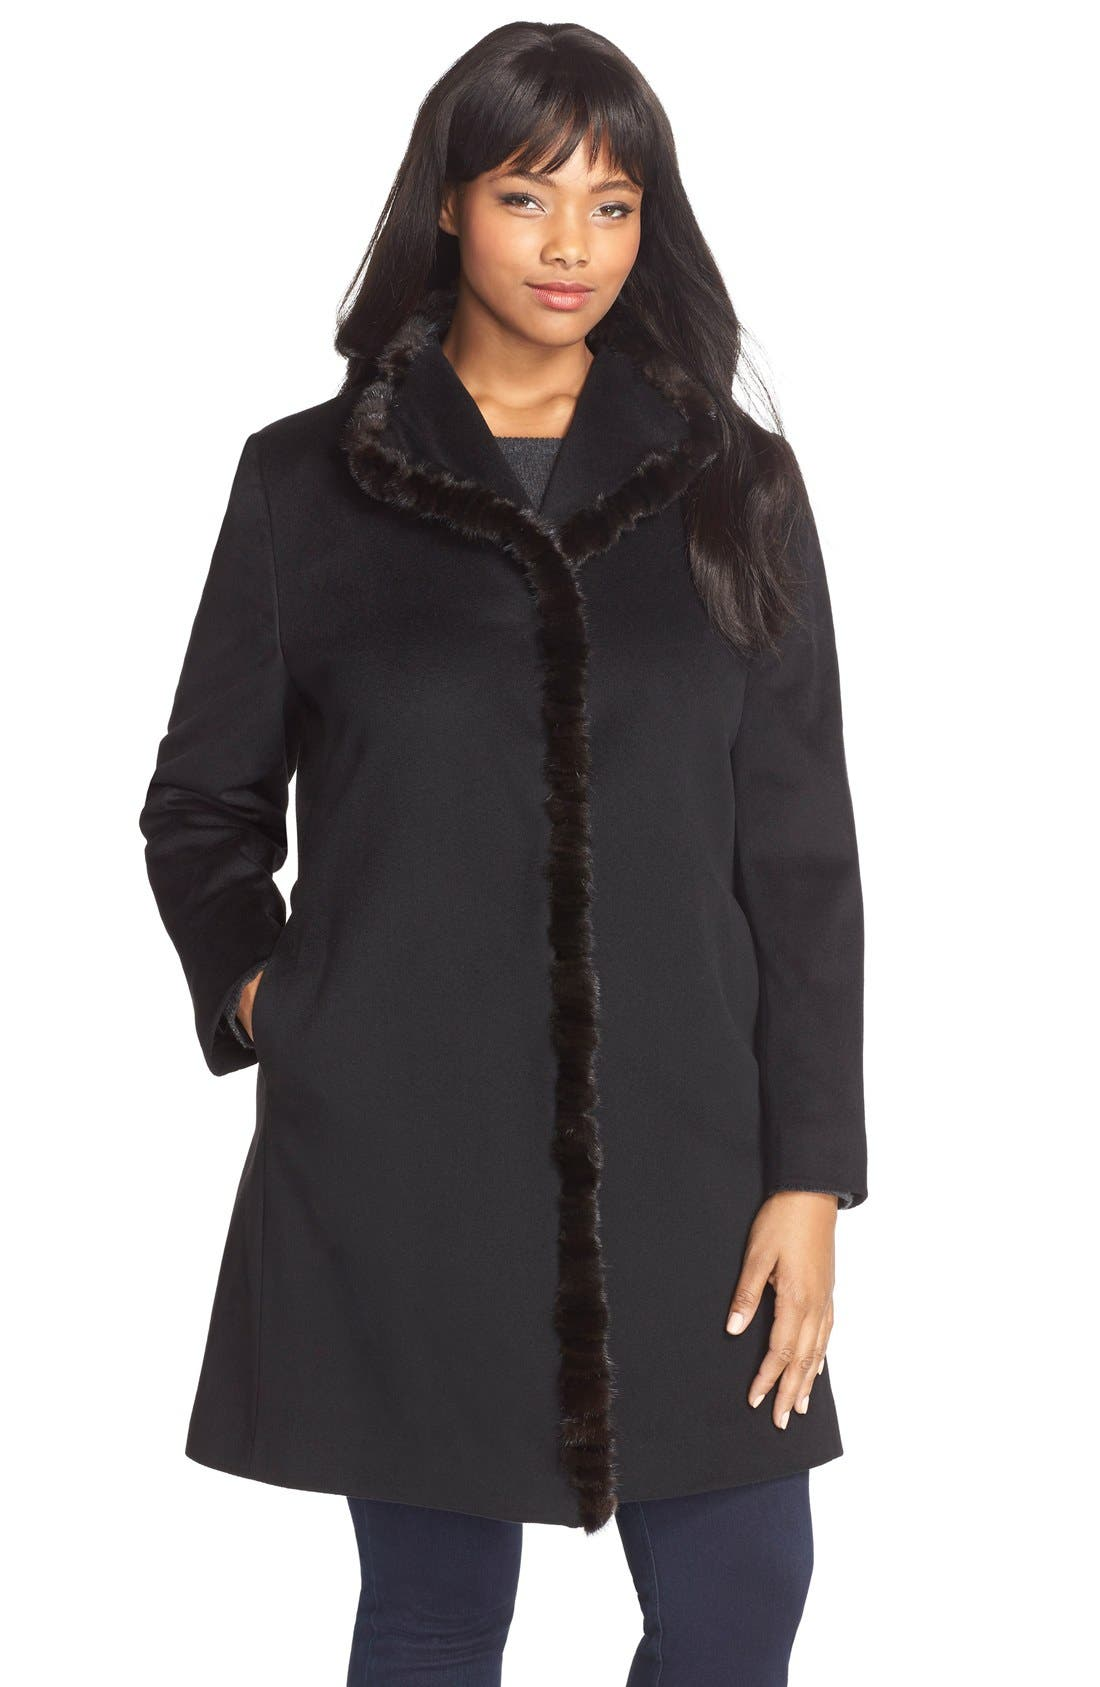 Main Image - Fleurette Wool Wing Collar Coat with Genuine Mink Trim (Plus Size)